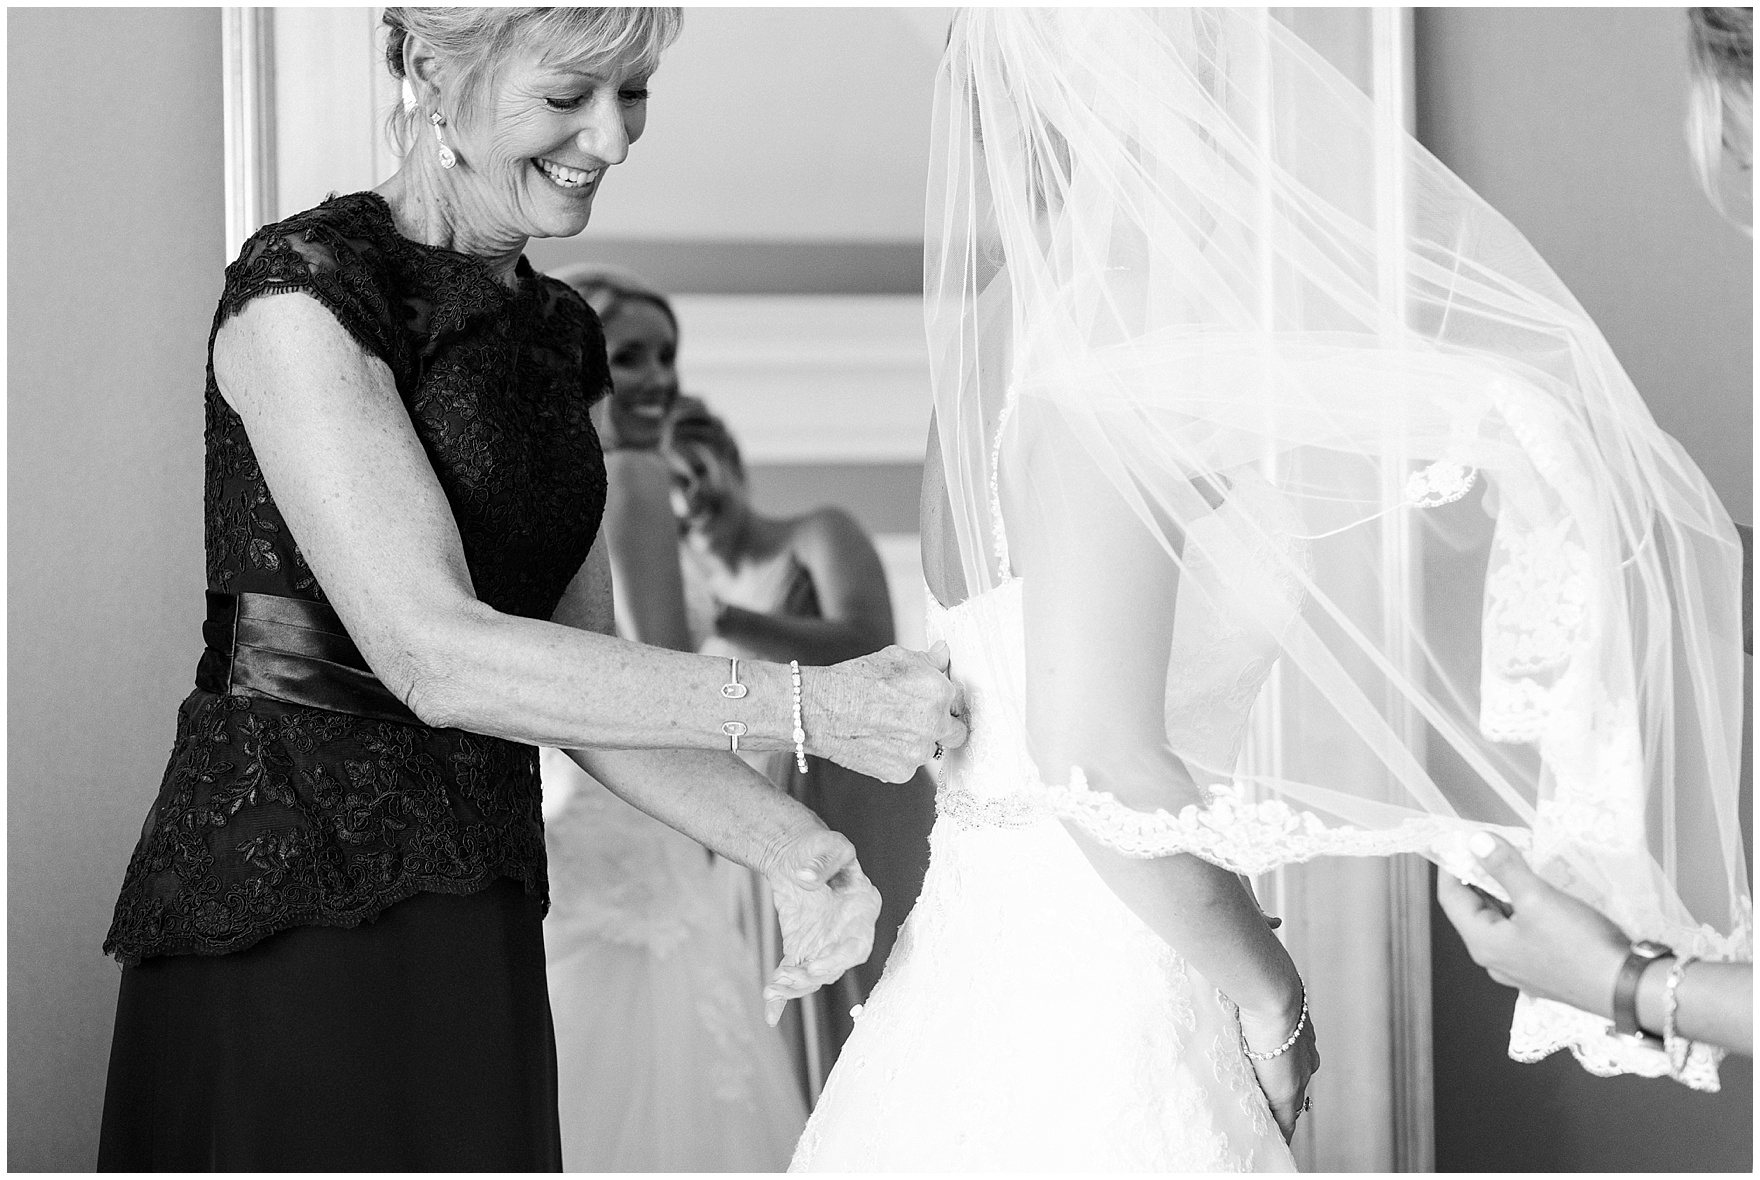 The bride's mother zips her wedding dress for an Itasca Country Club Illinois wedding.